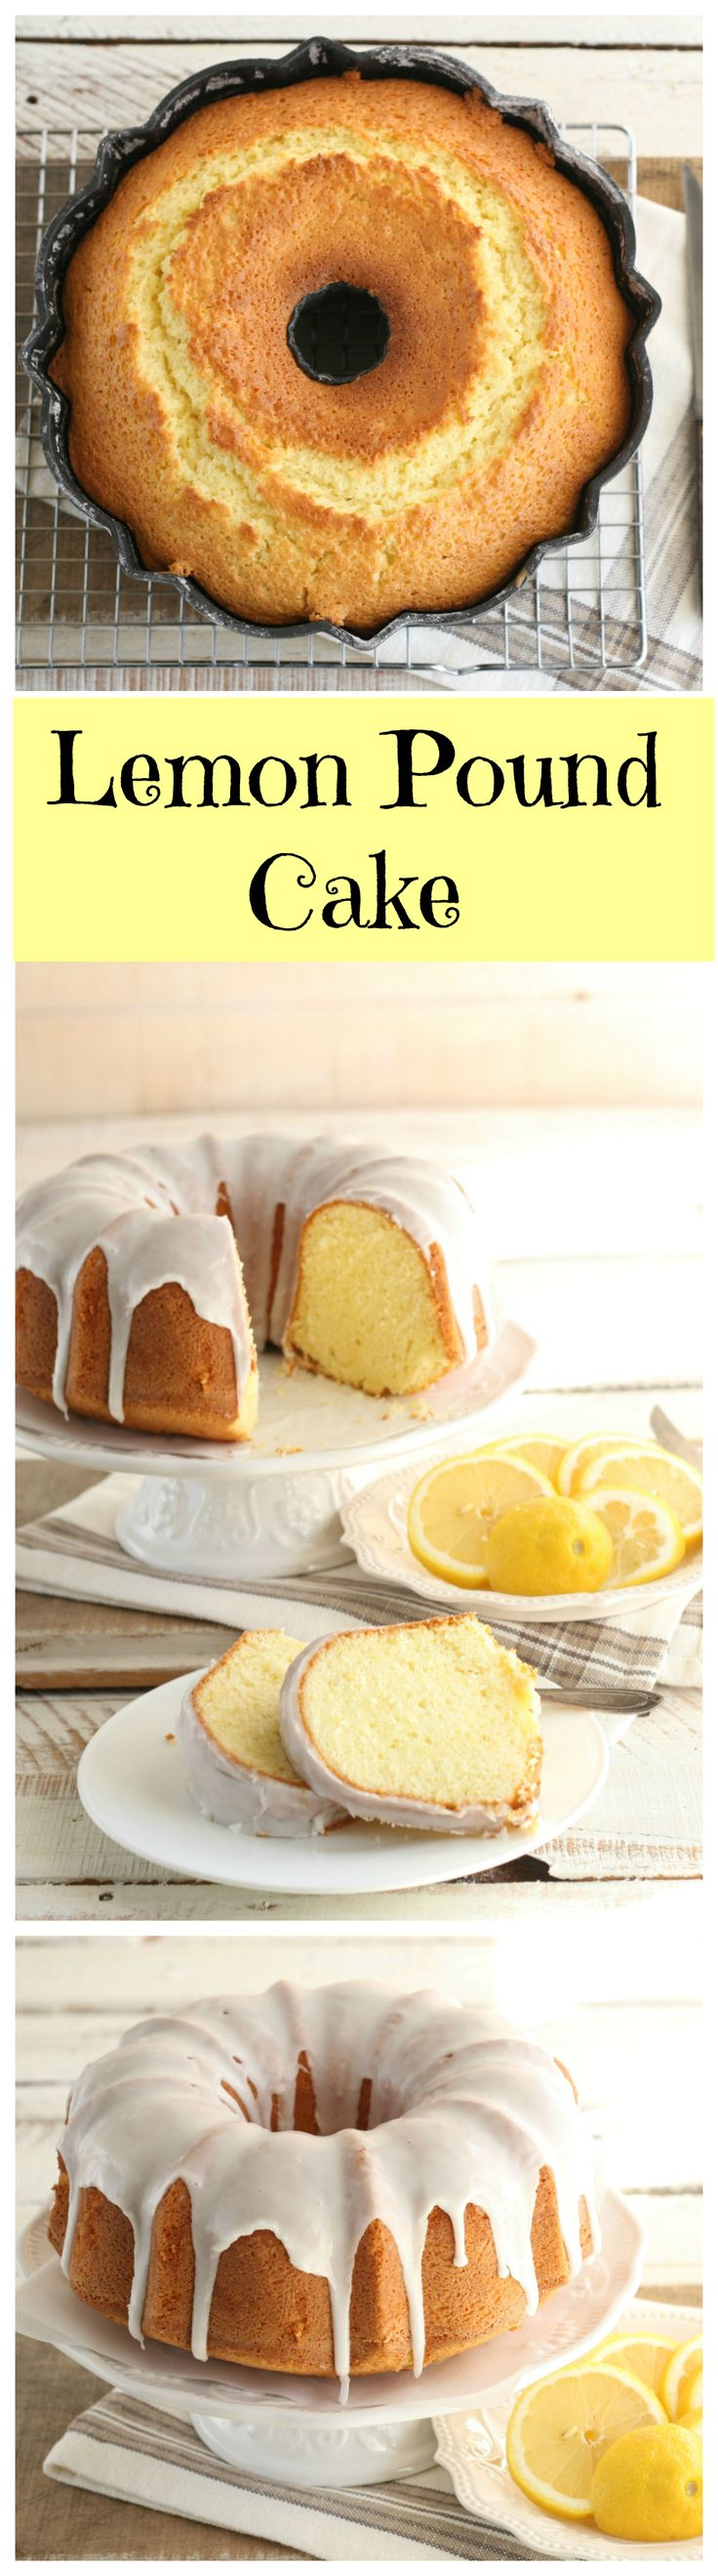 One of the easiest and delicious cakes to make. This old-fashioned pound cake, drizzled with lemon icing- YUM!